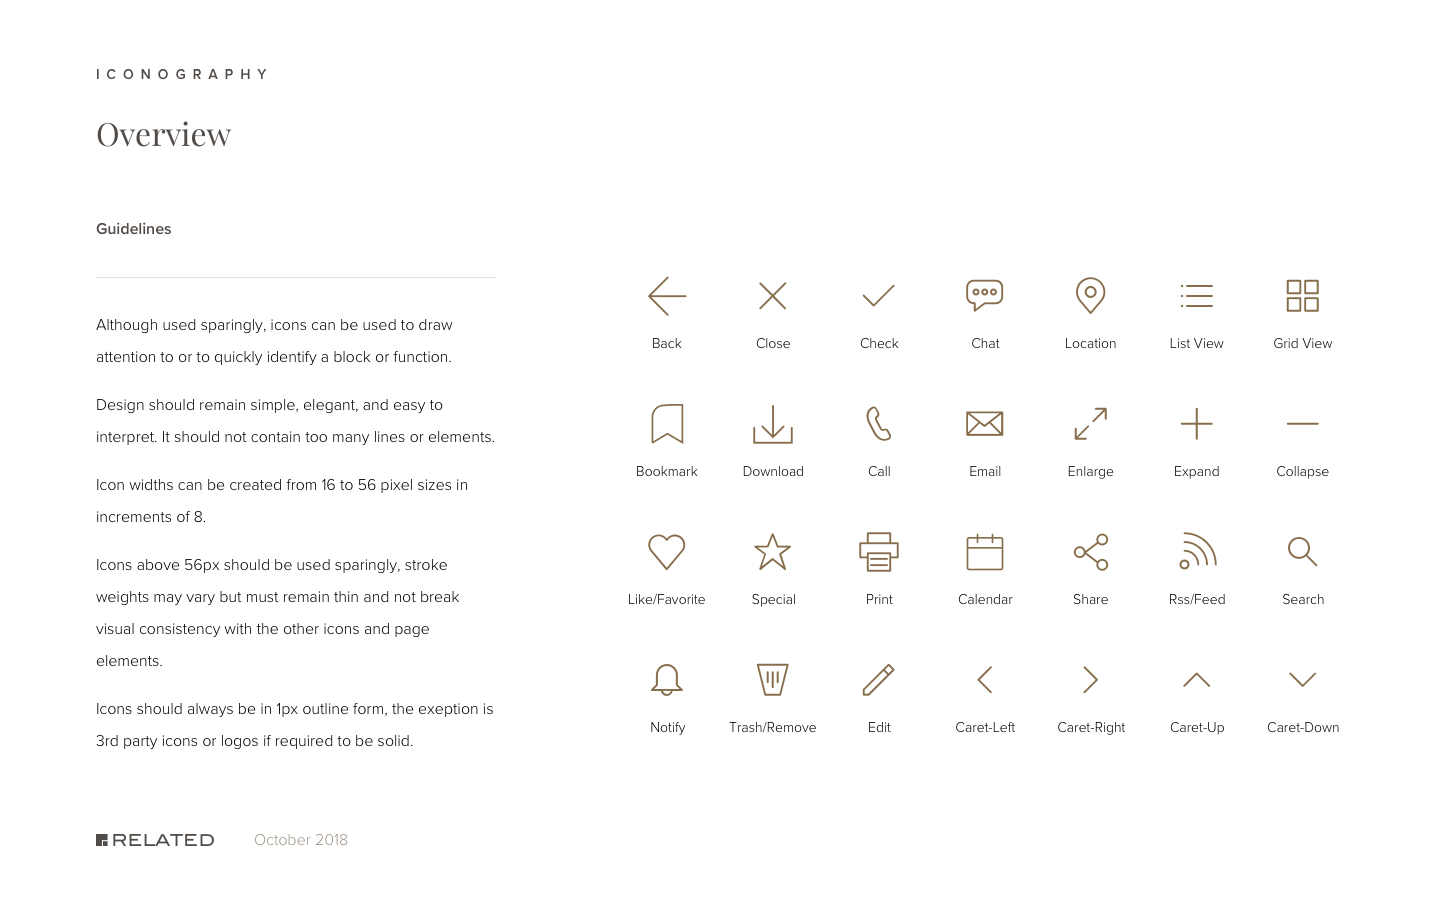 7.0-Iconography-Introduction